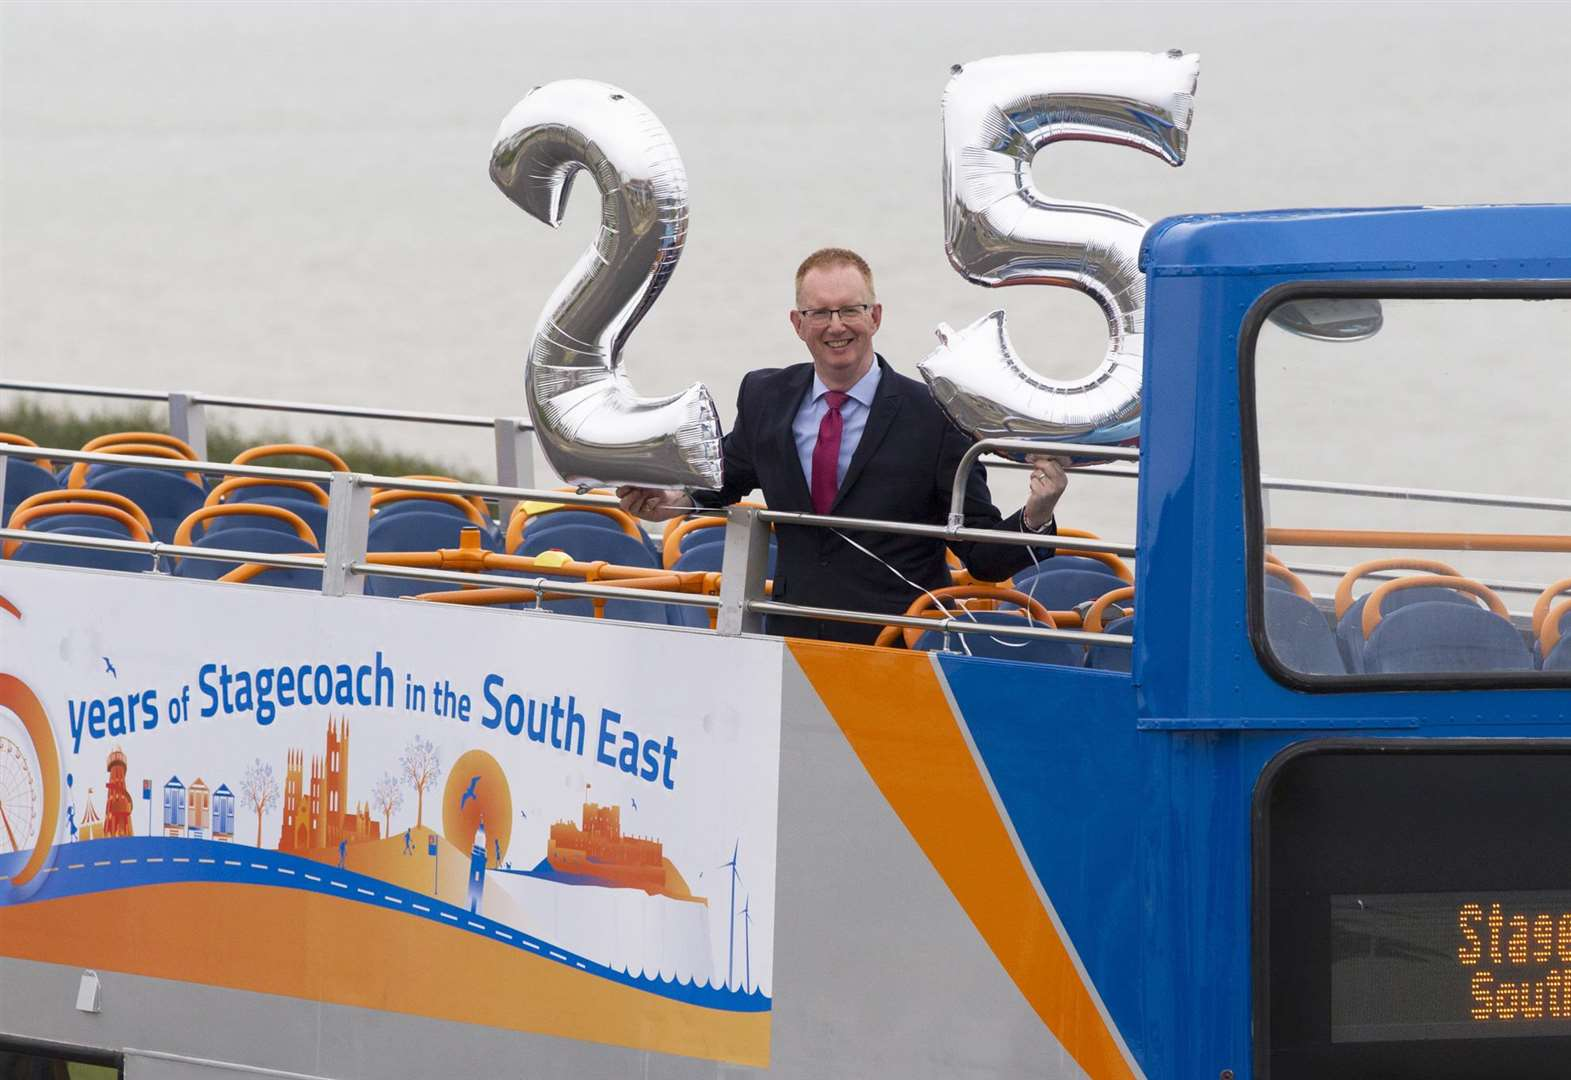 Buses turned silver to mark firm's anniversary